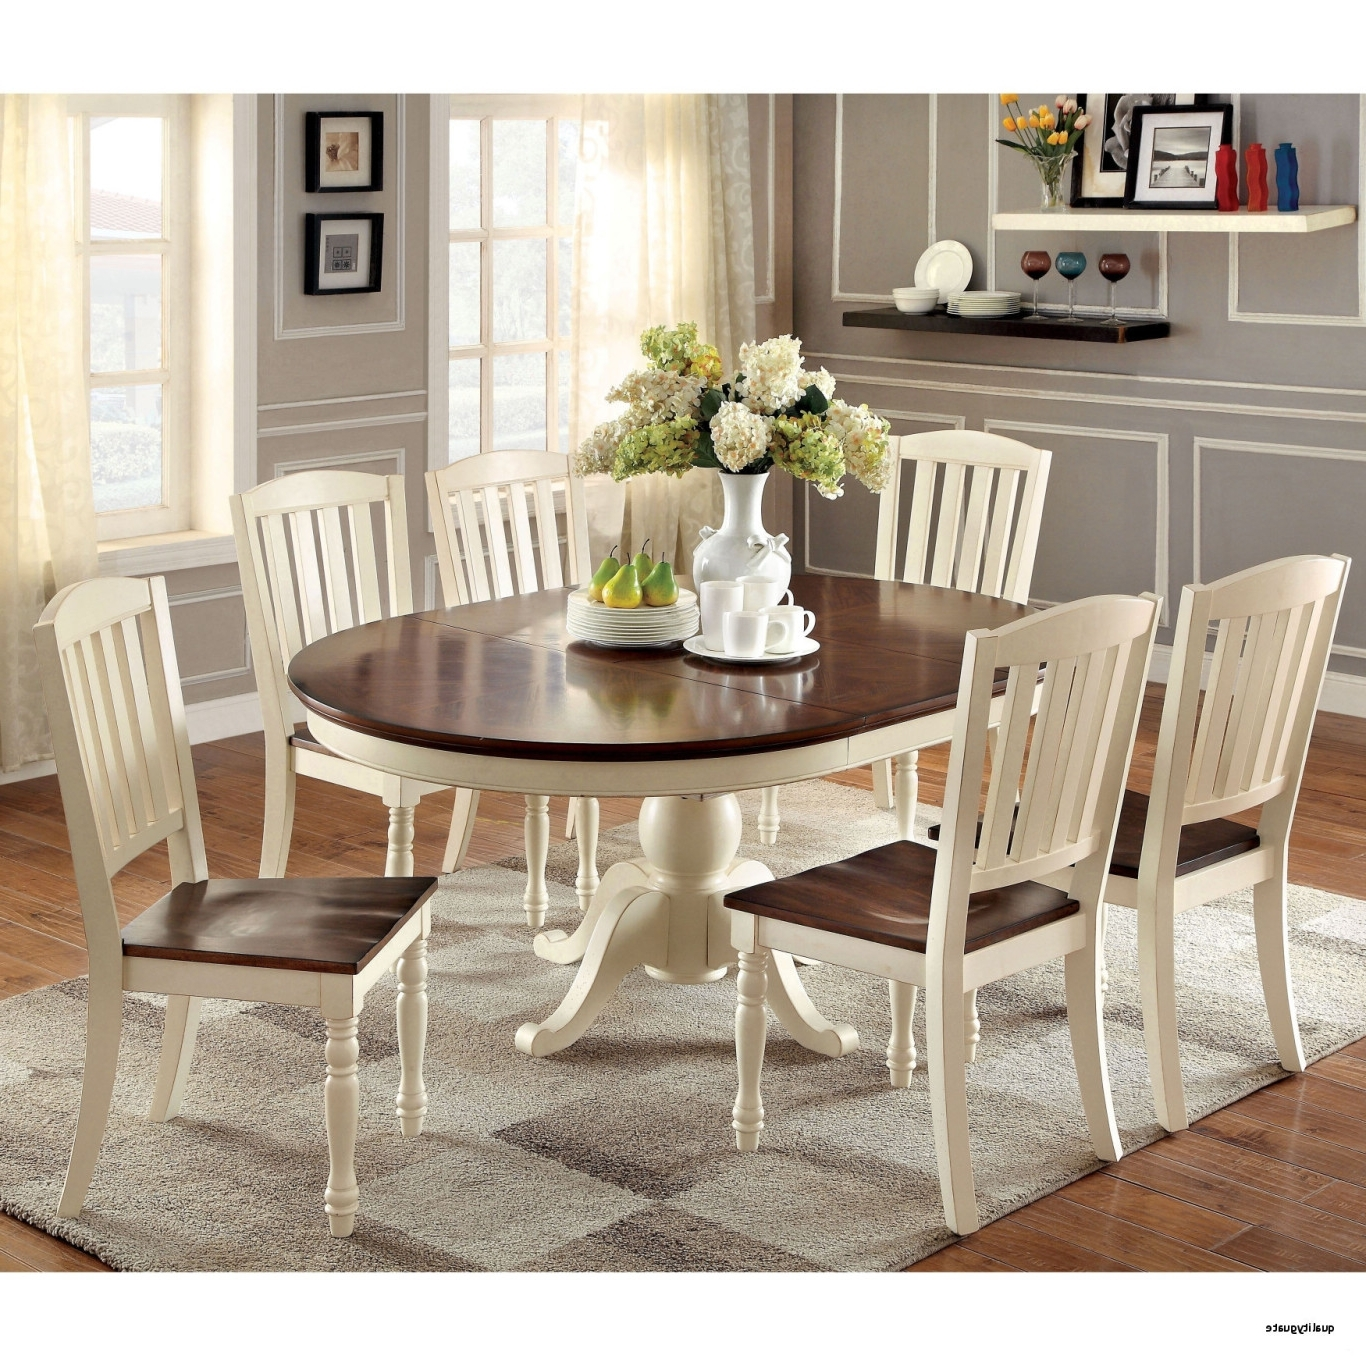 Classy 99 Small Round Kitchen Table And Chairs With This Practical In Preferred Small Round White Dining Tables (View 22 of 25)